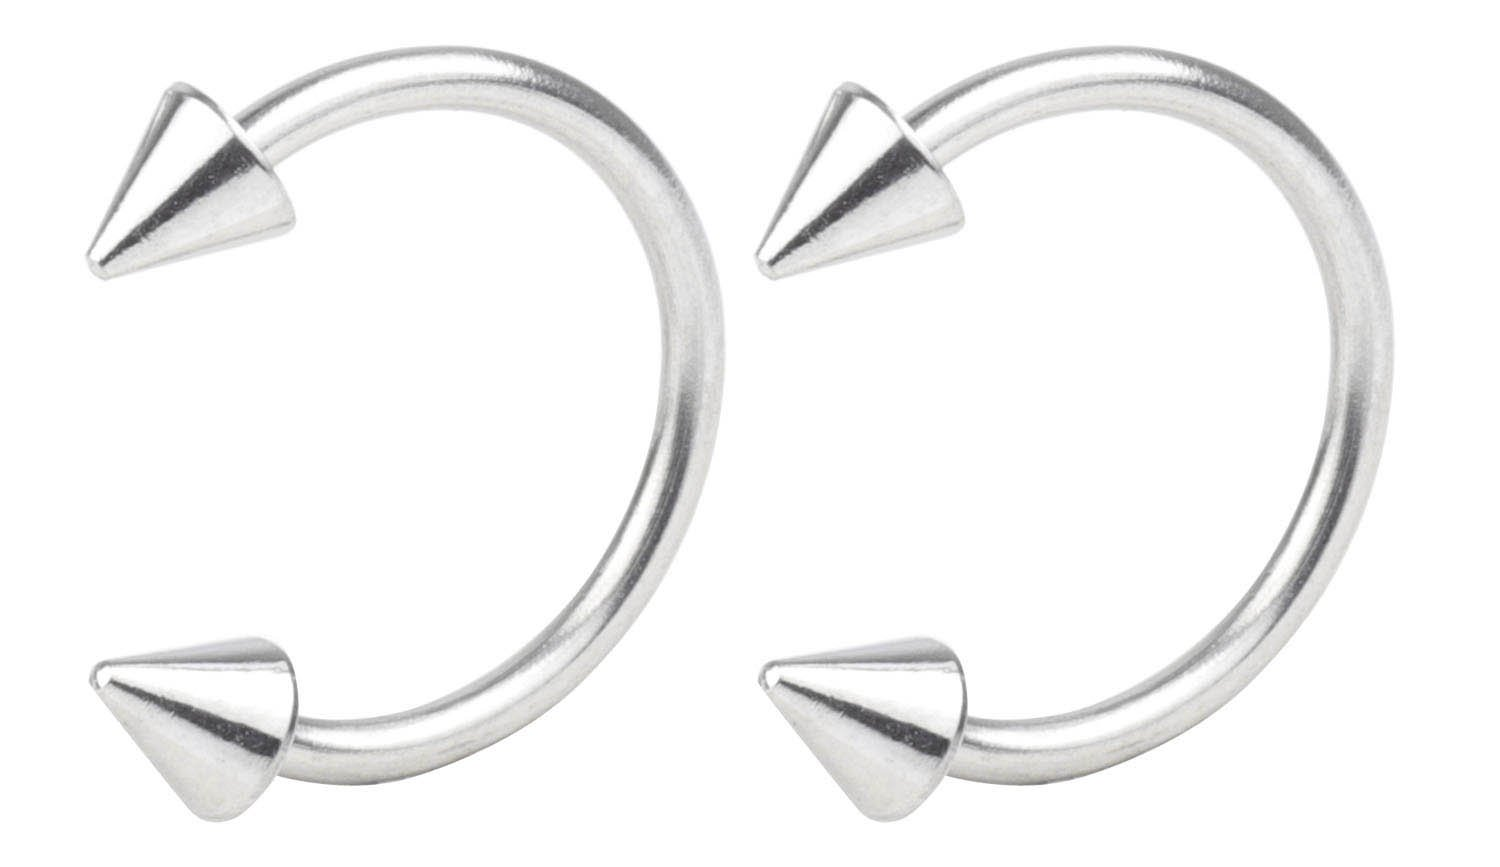 YNR's 2PCS 16G Stainless Steel Horseshoe Ring Stainless Steel Lip Cartilage Helix Tragus Smiley 3mm Spike 8mm Inner